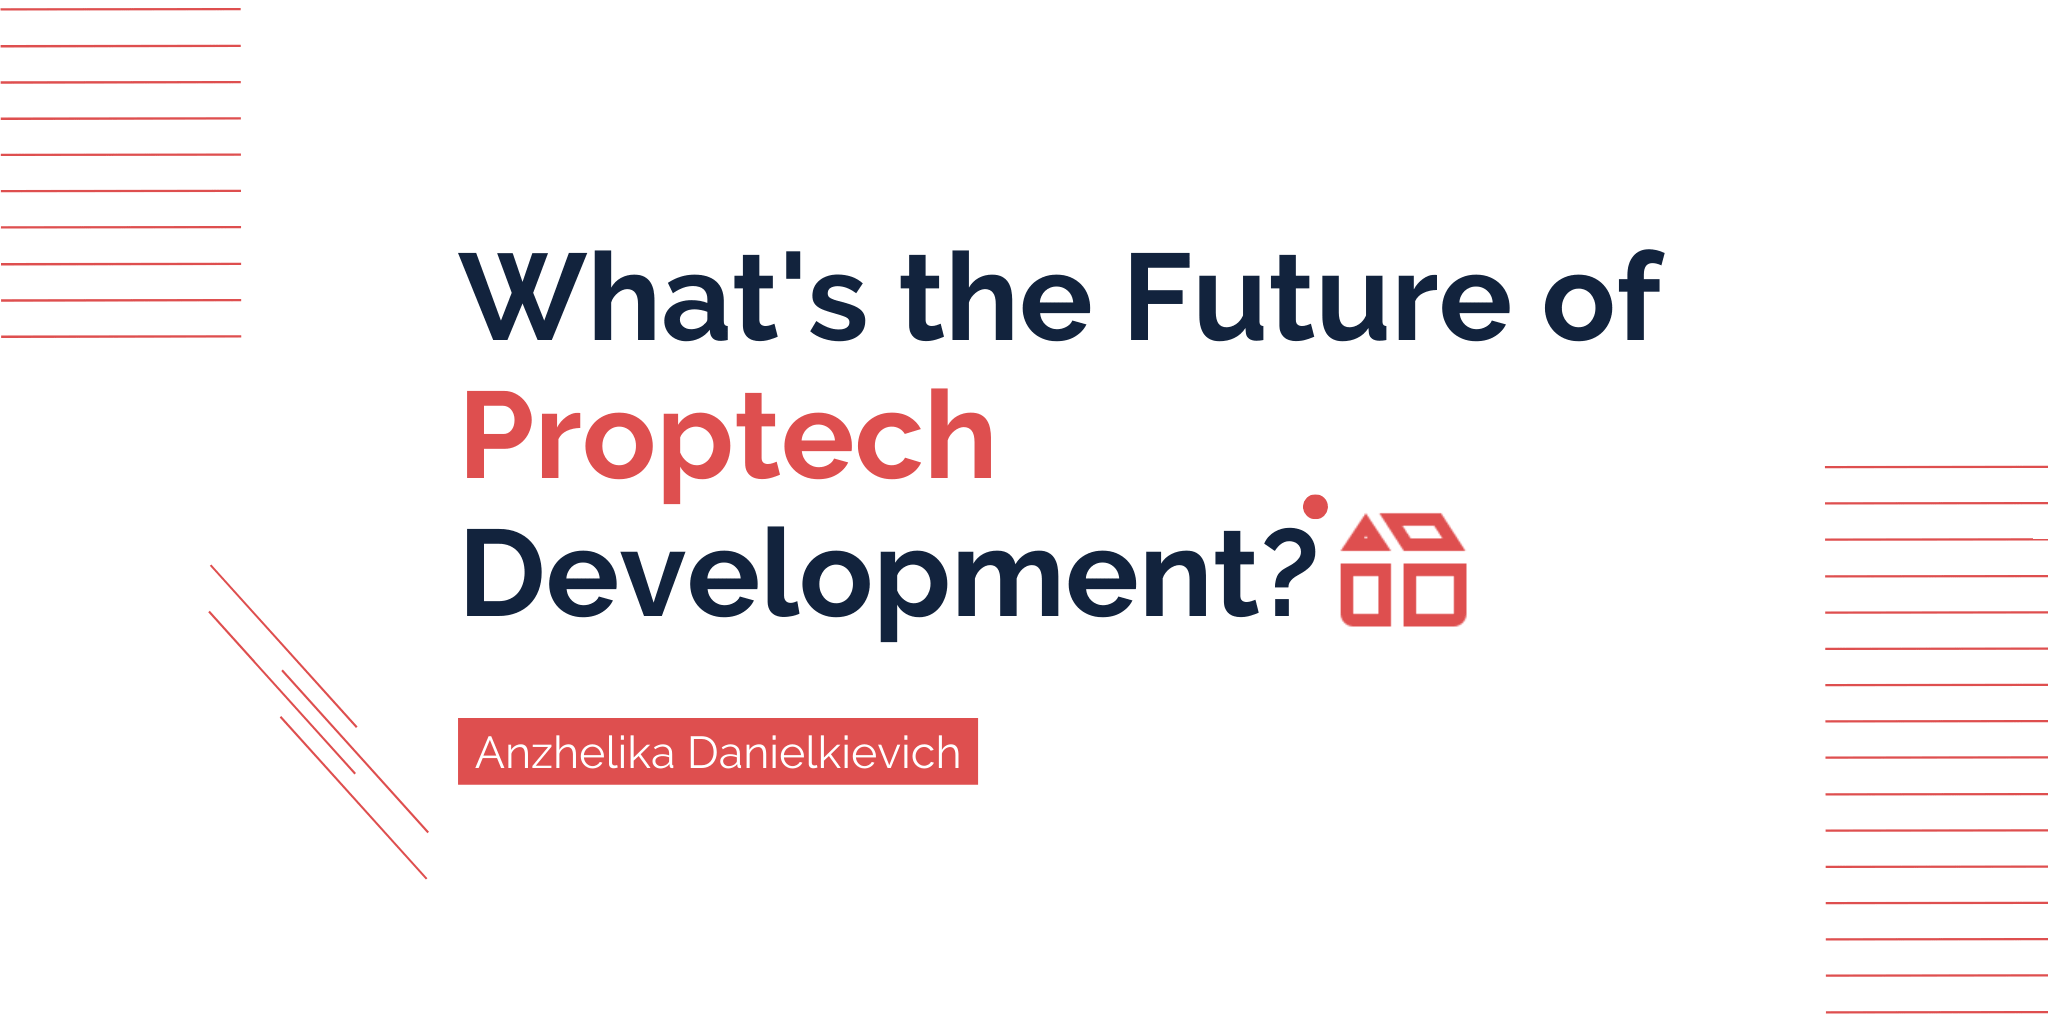 What's the Future of Proptech Development?